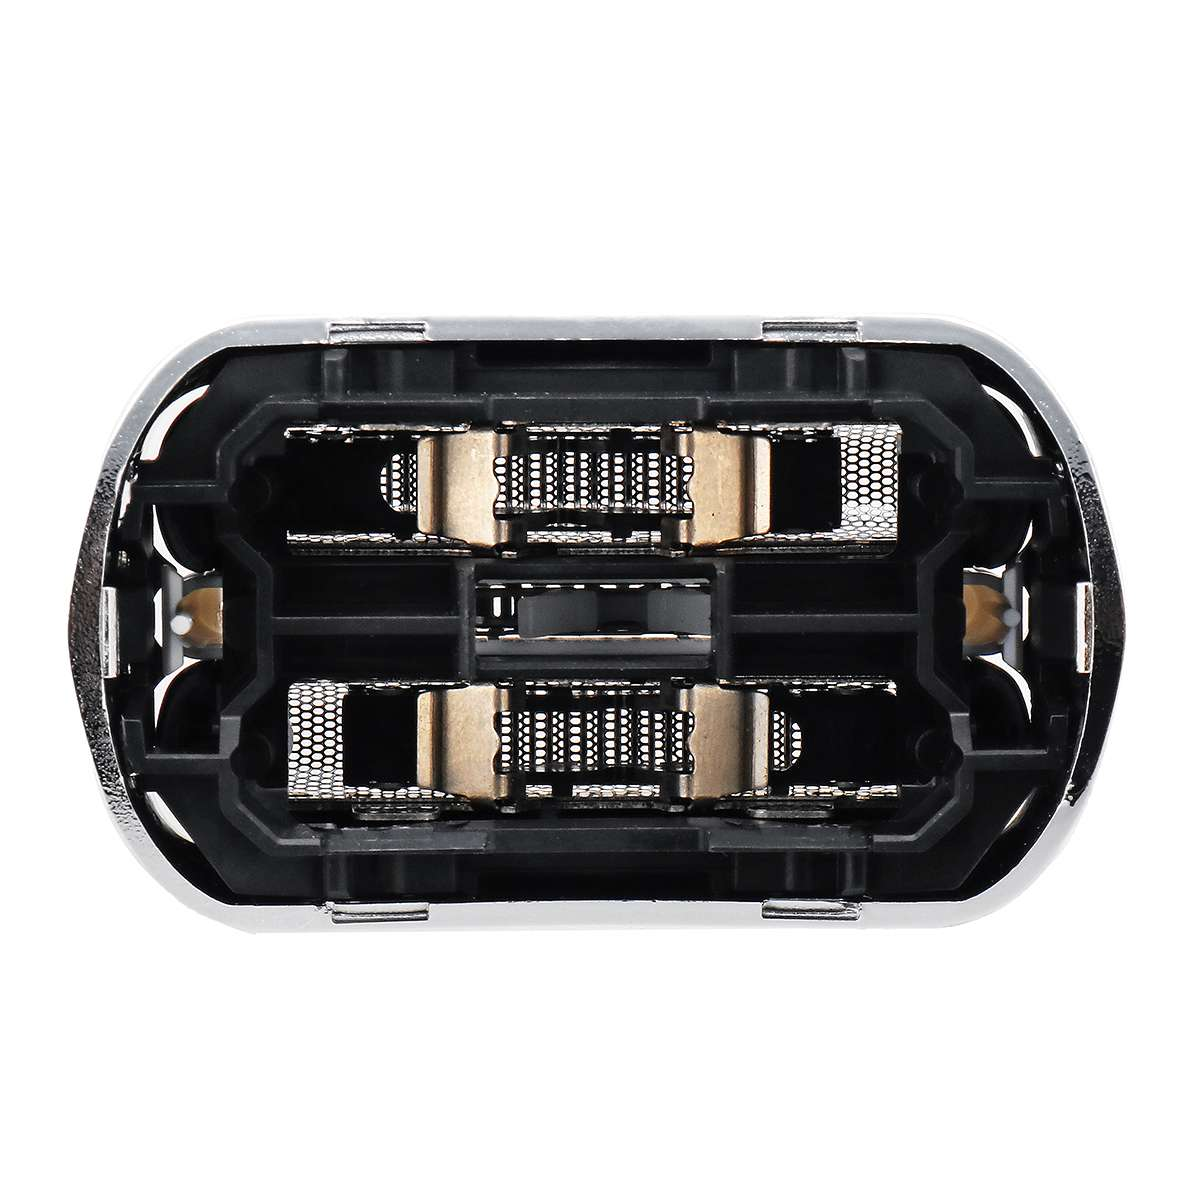 Shaver Replacement Foil Head for Braun Series 3 32S 3070 3080S 3020 350 340  320 350CC b7cd6fe28906